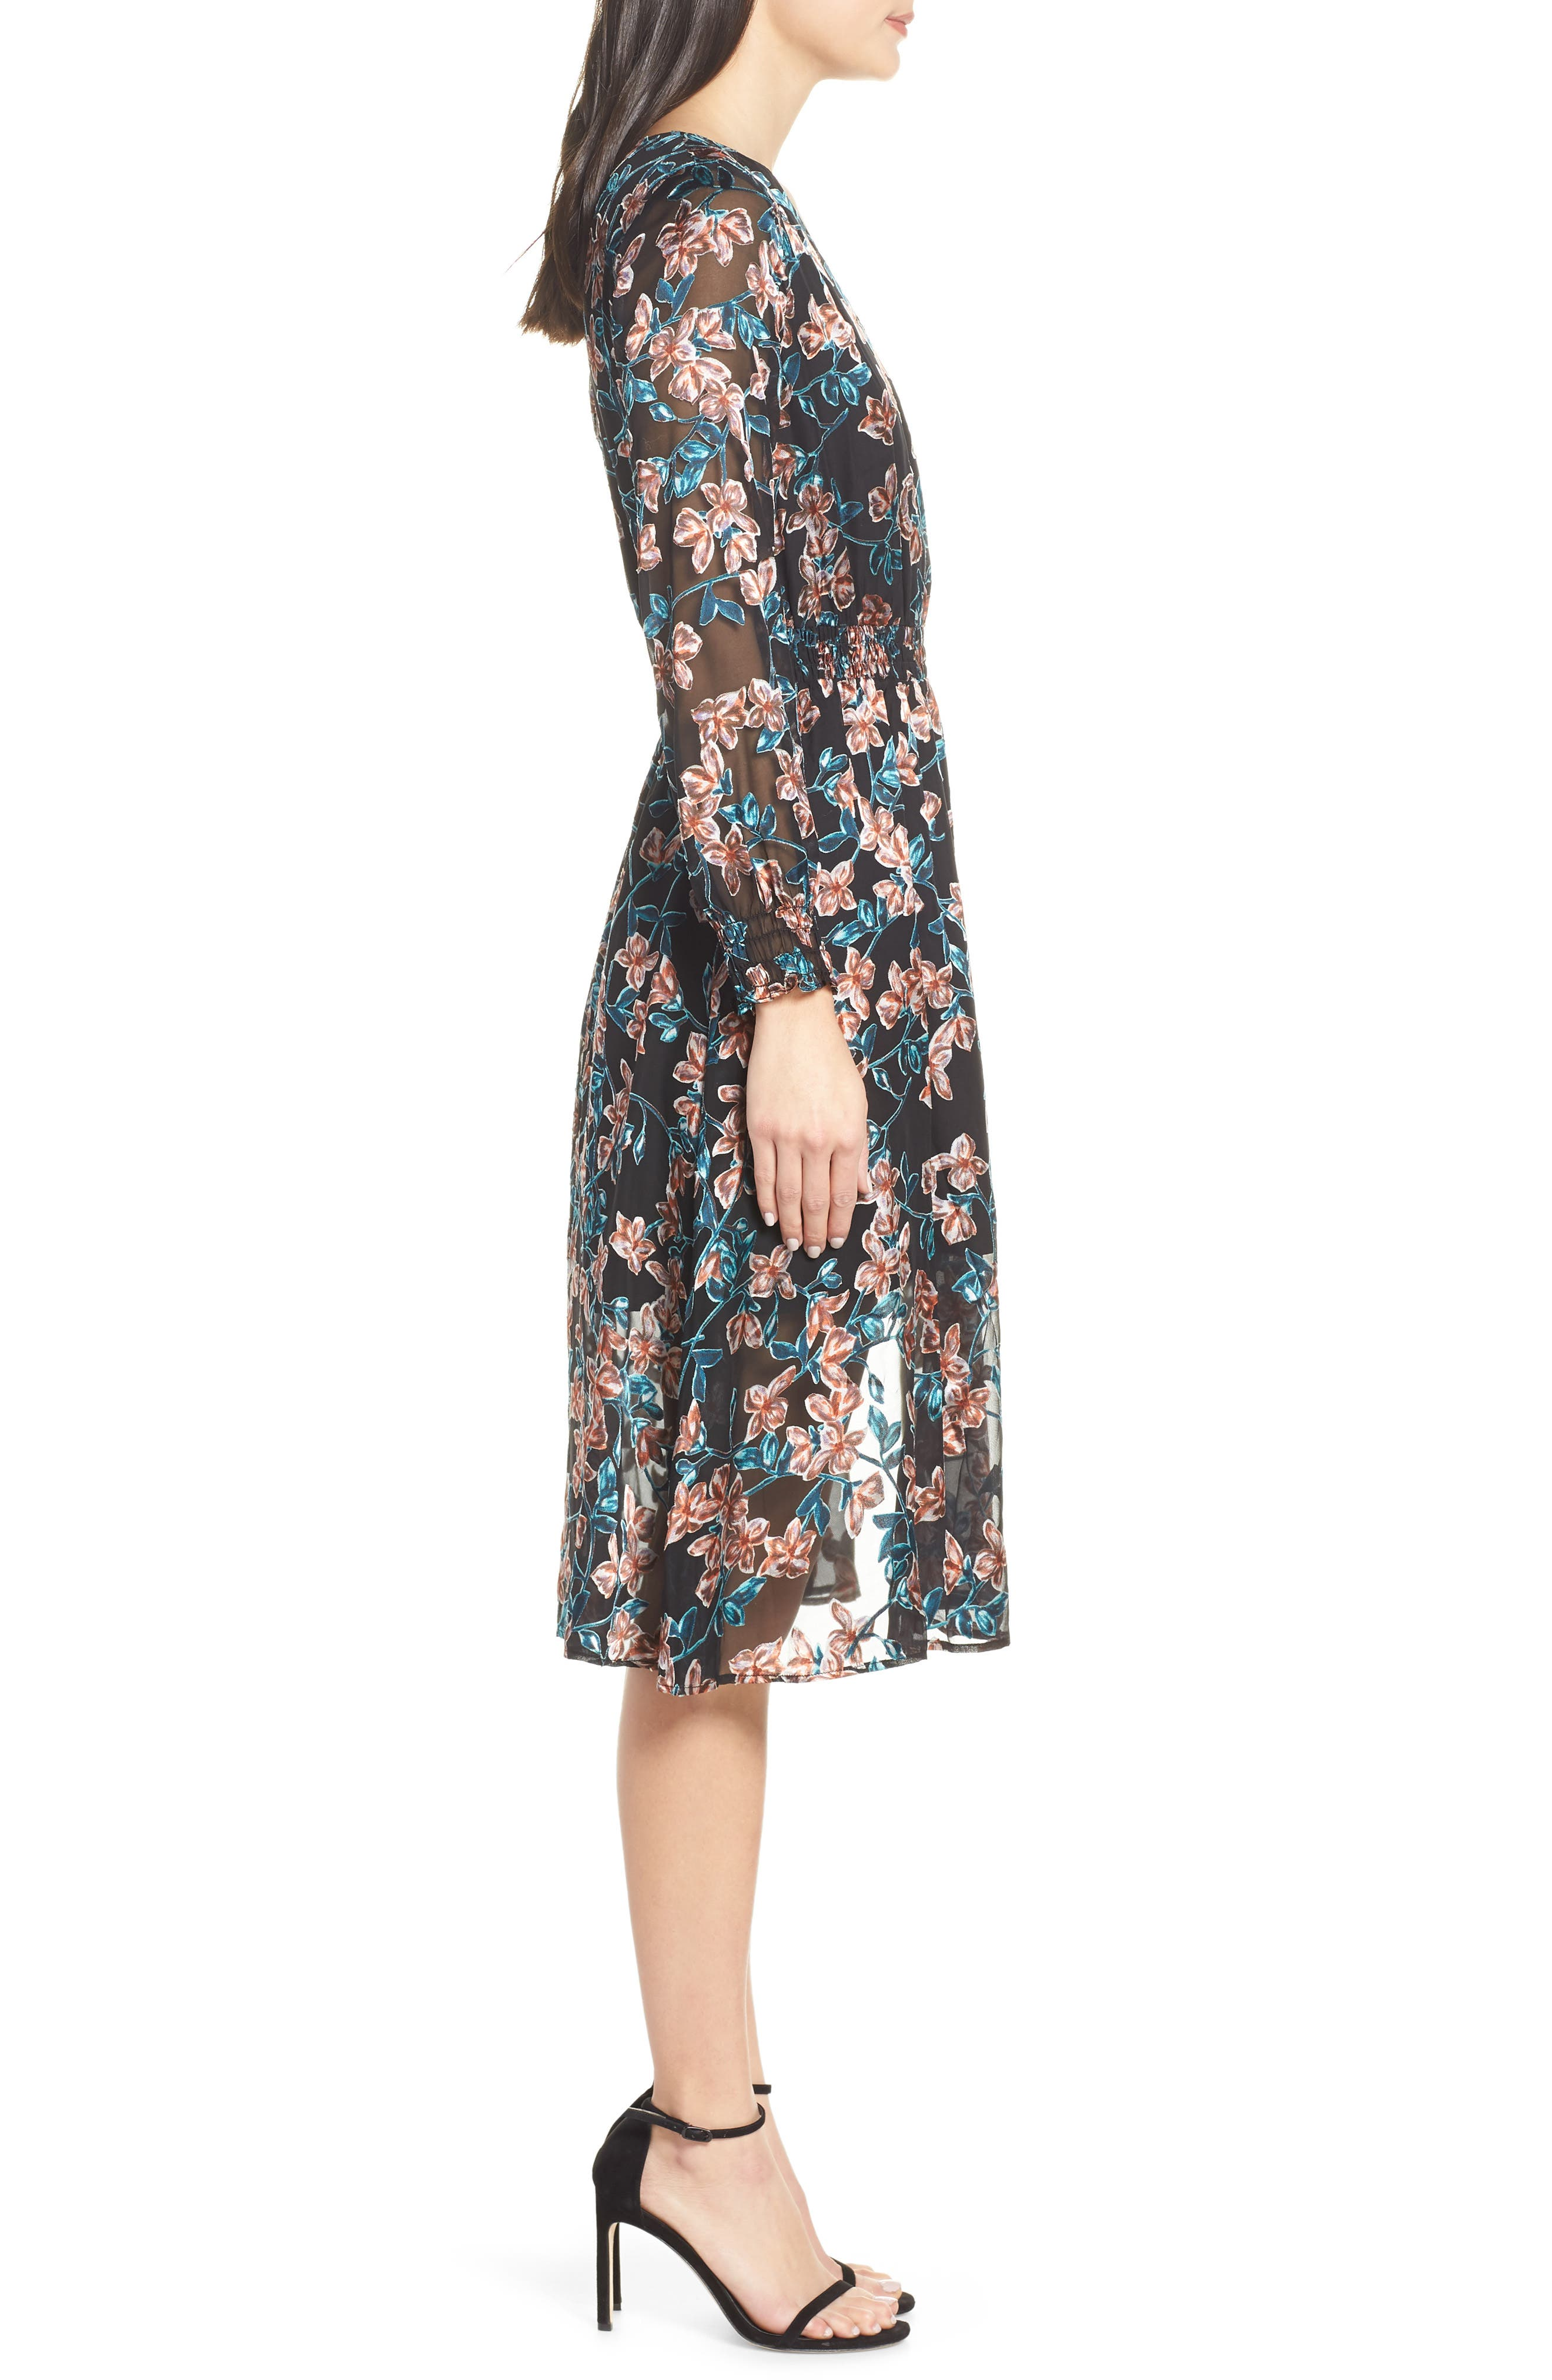 ALI & JAY, Treat Me Like a Lady Floral Dress, Alternate thumbnail 4, color, 001